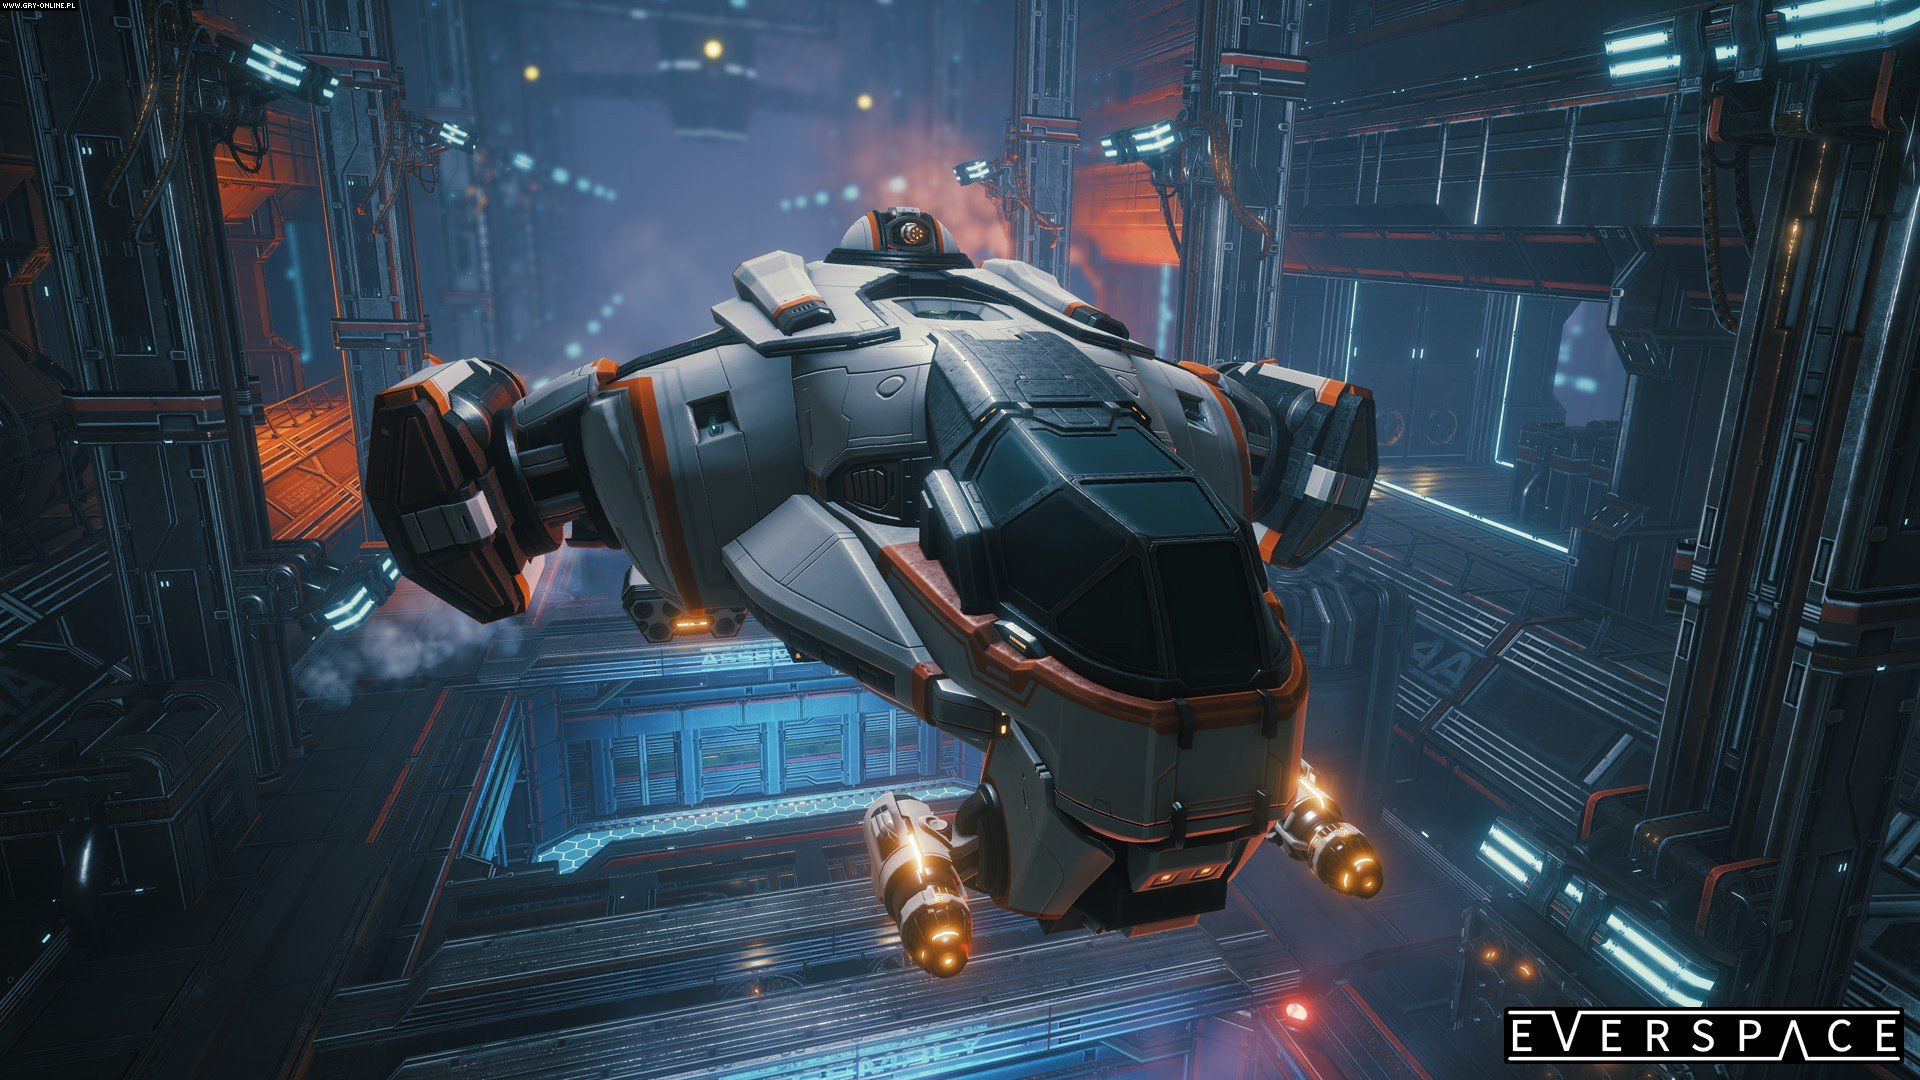 Everspace PC, PS4, XONE, Switch Gry Screen 43/104, Rockfish Games